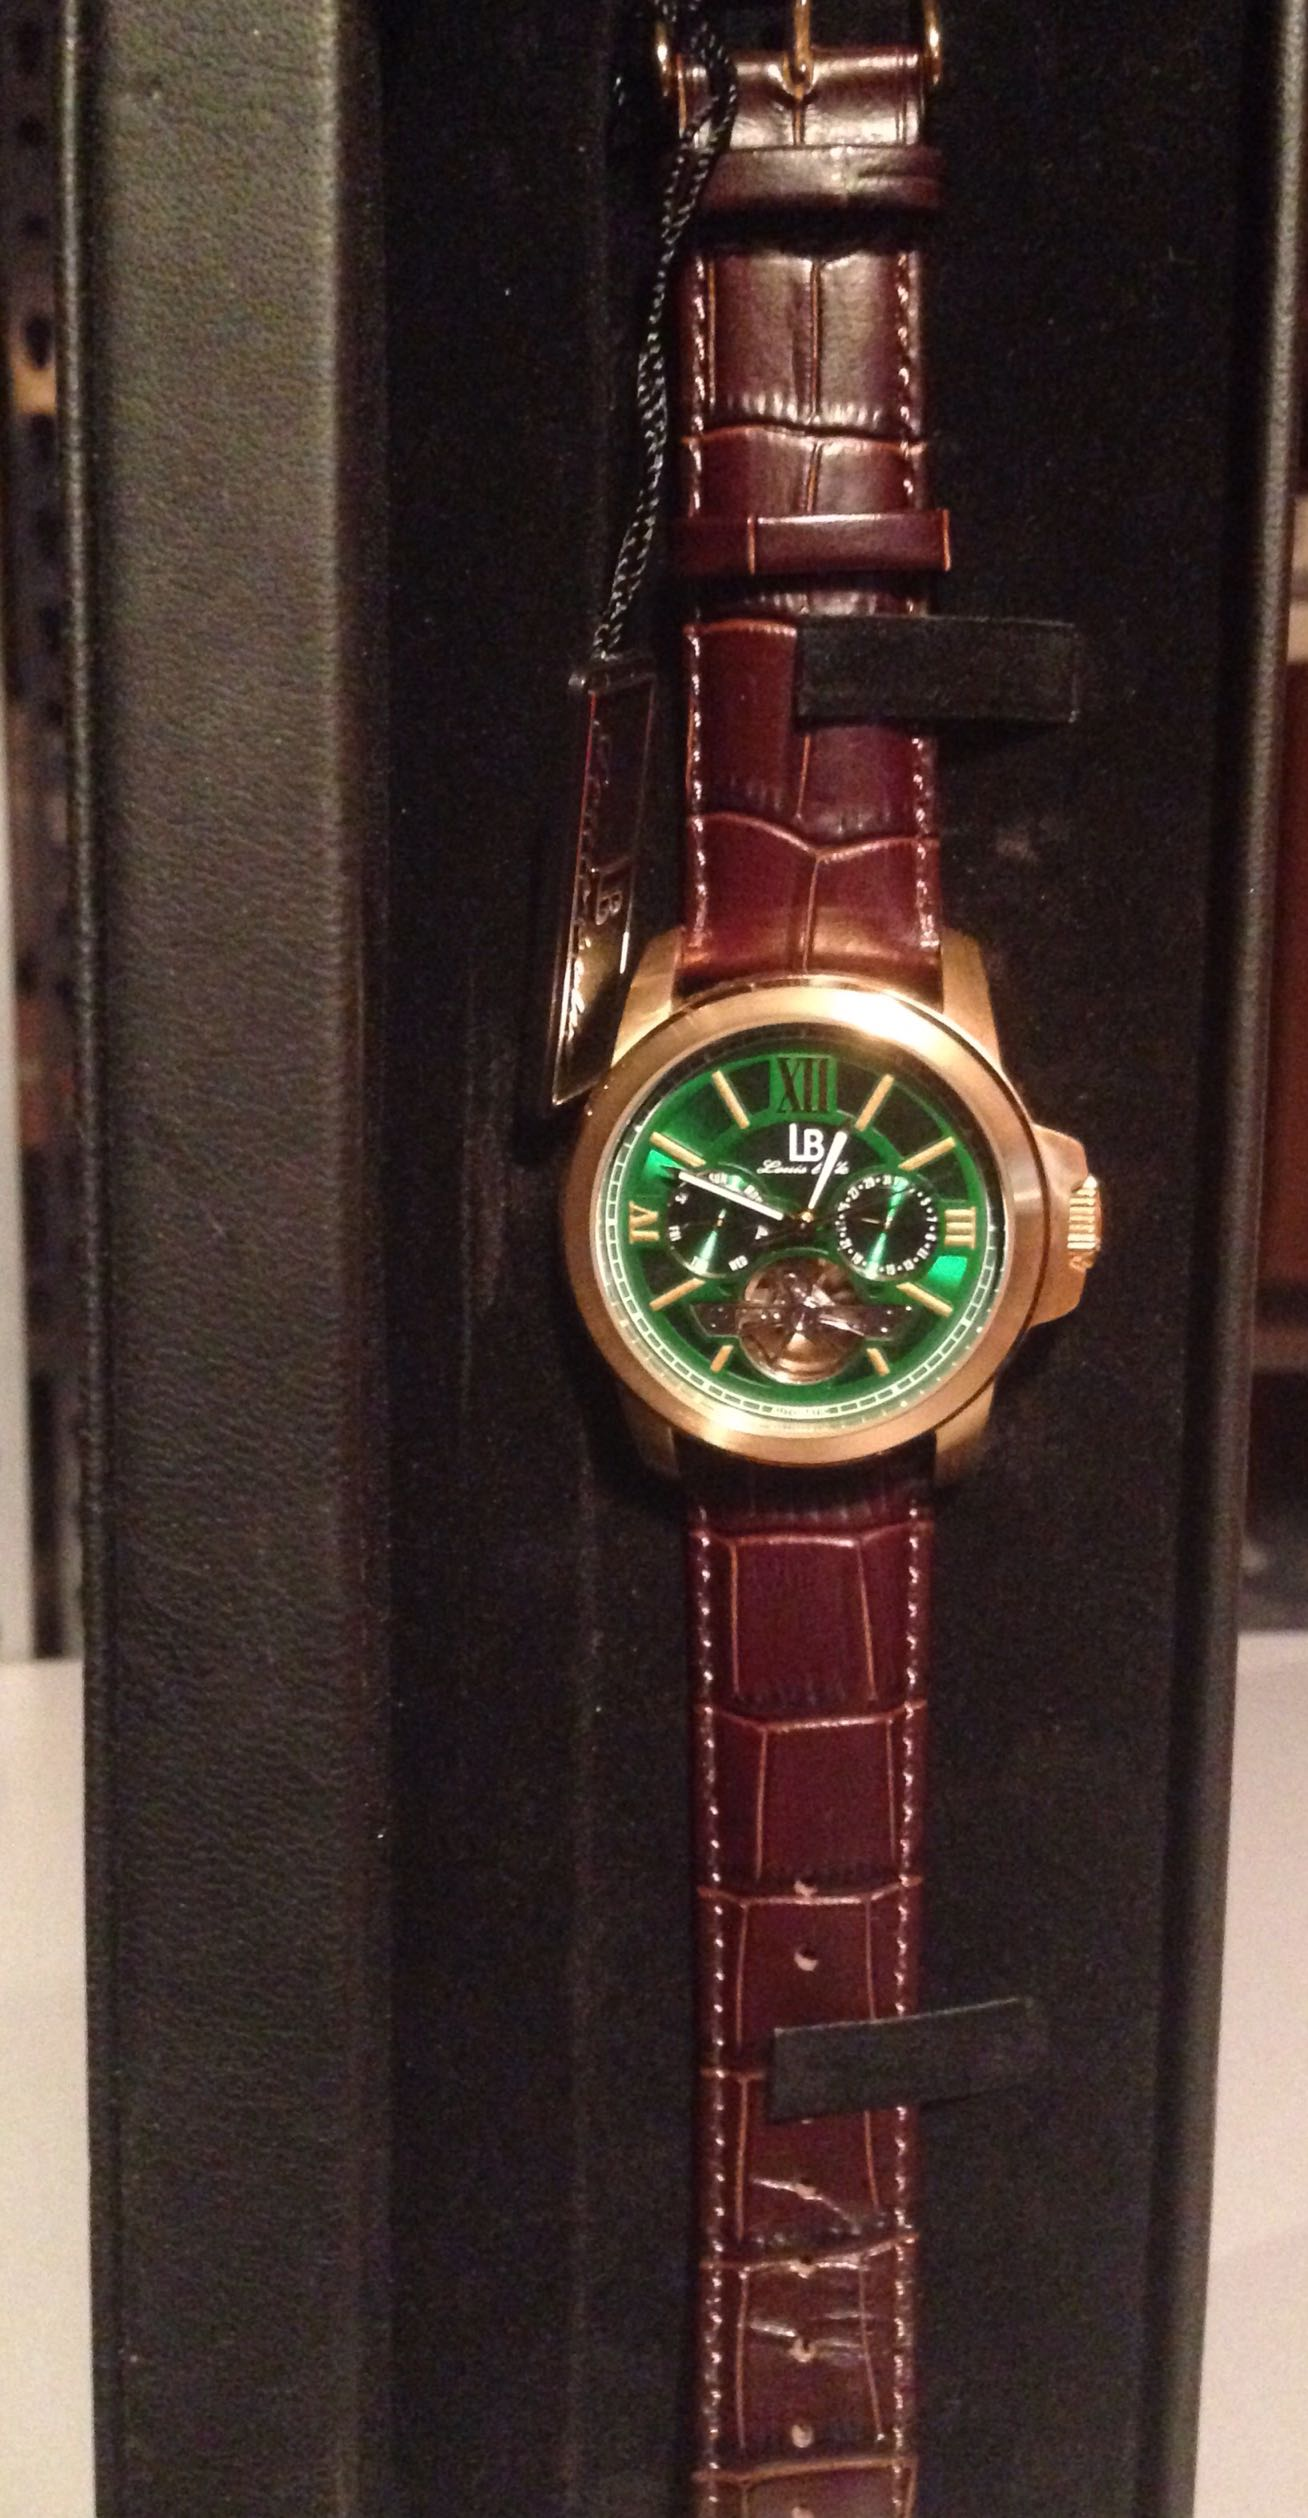 new lb louis bolle axel automatic multi function mens watch green new lb louis bolle axel automatic multi function mens watch green face